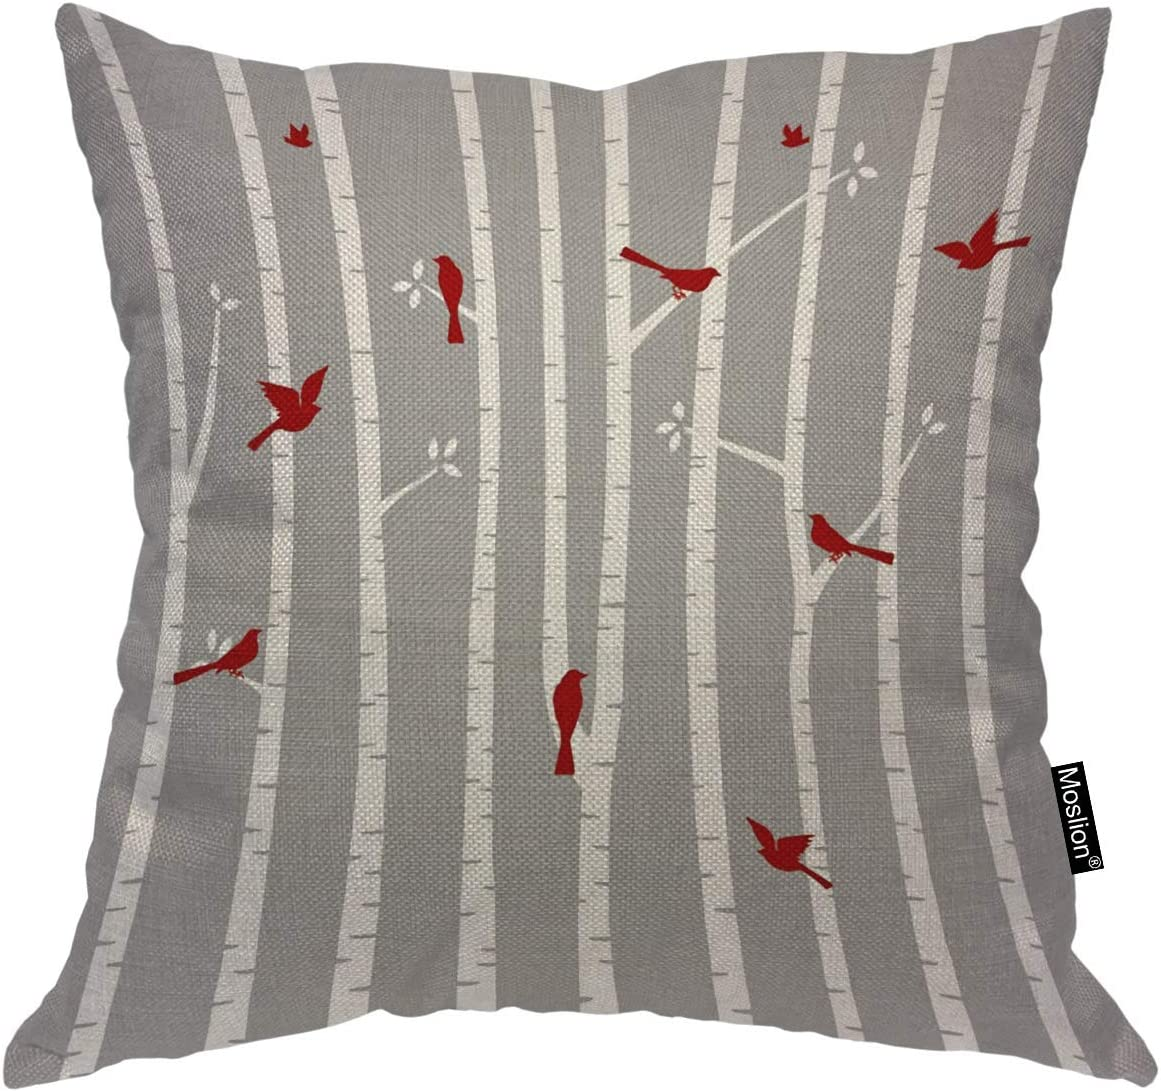 Moslion Throw Pillow Cover Birds in Birch 18x18 Inch Animal Trees Nature Red White Grey Square Pillow Case Cushion Cover for Home Car Decorative Cotton Linen